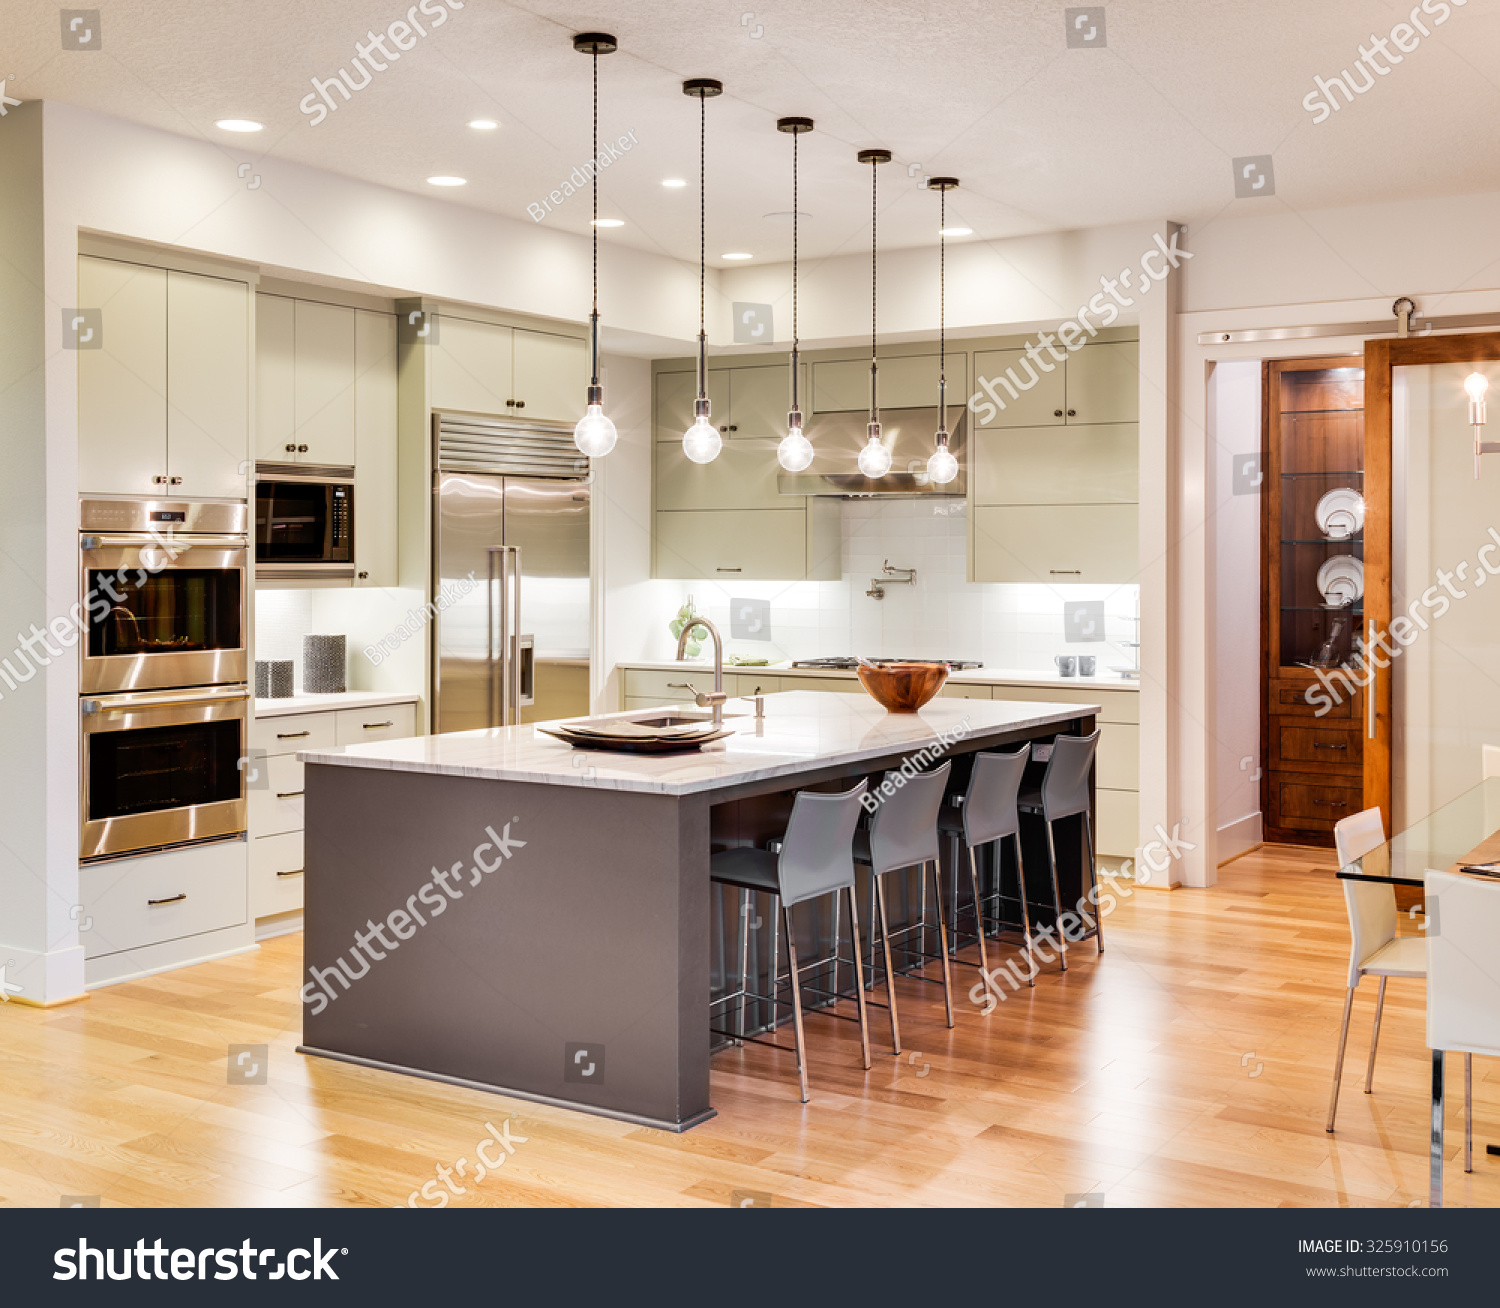 Kitchen Island Using Stock Cabinets: Kitchen Interior With Island, Sink, Cabinets, And Hardwood